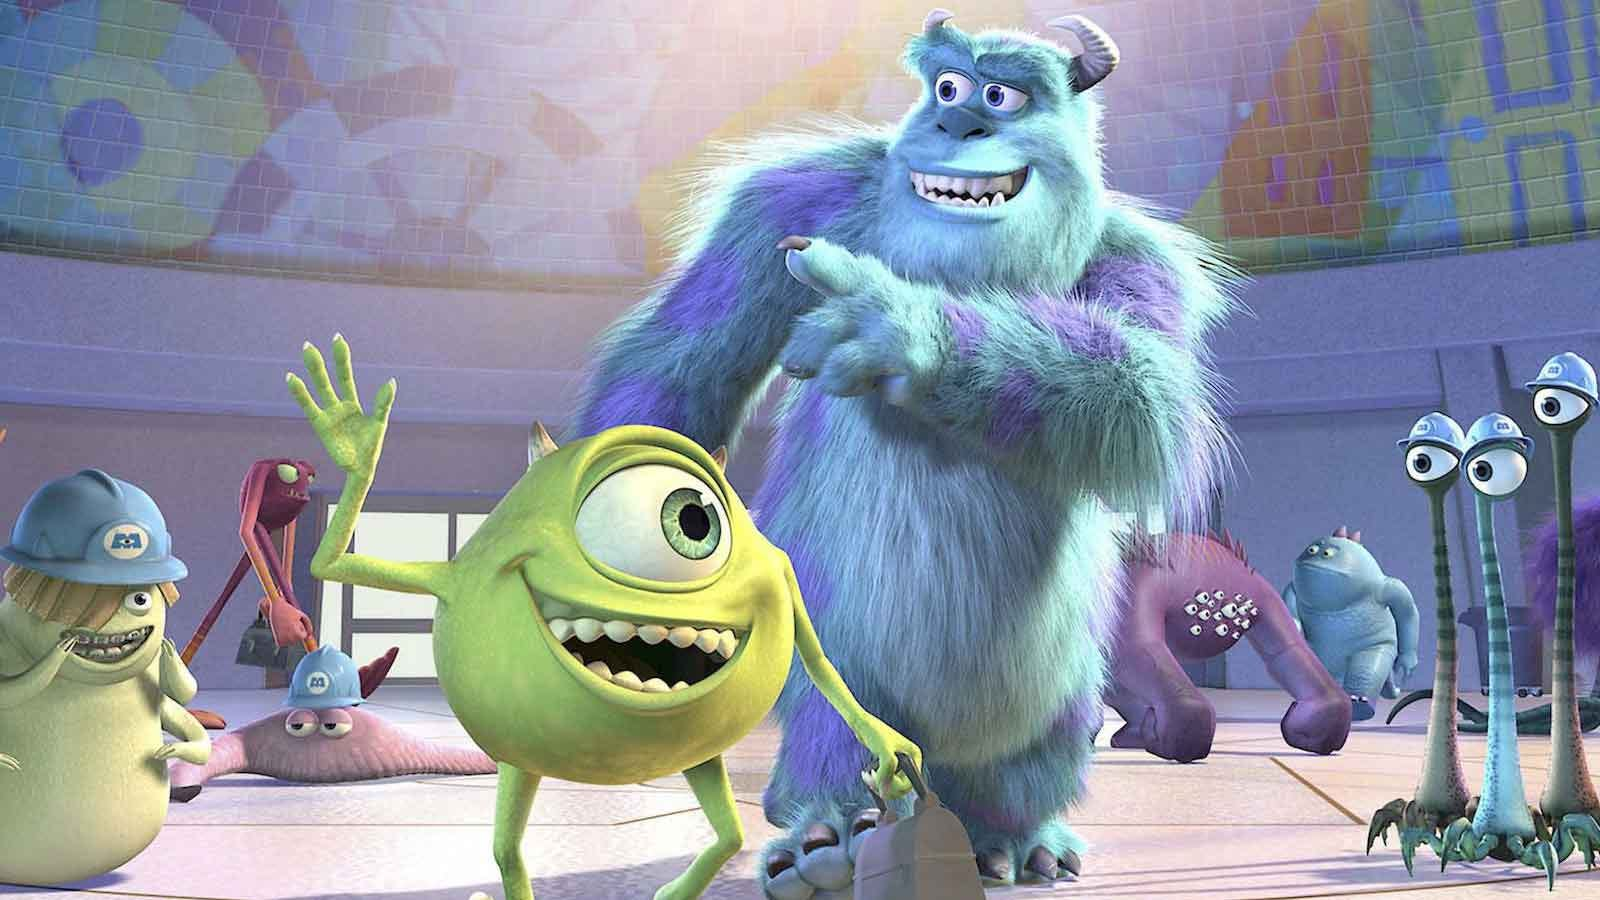 The main characters from Monsters, Inc. waving at their coworkers.